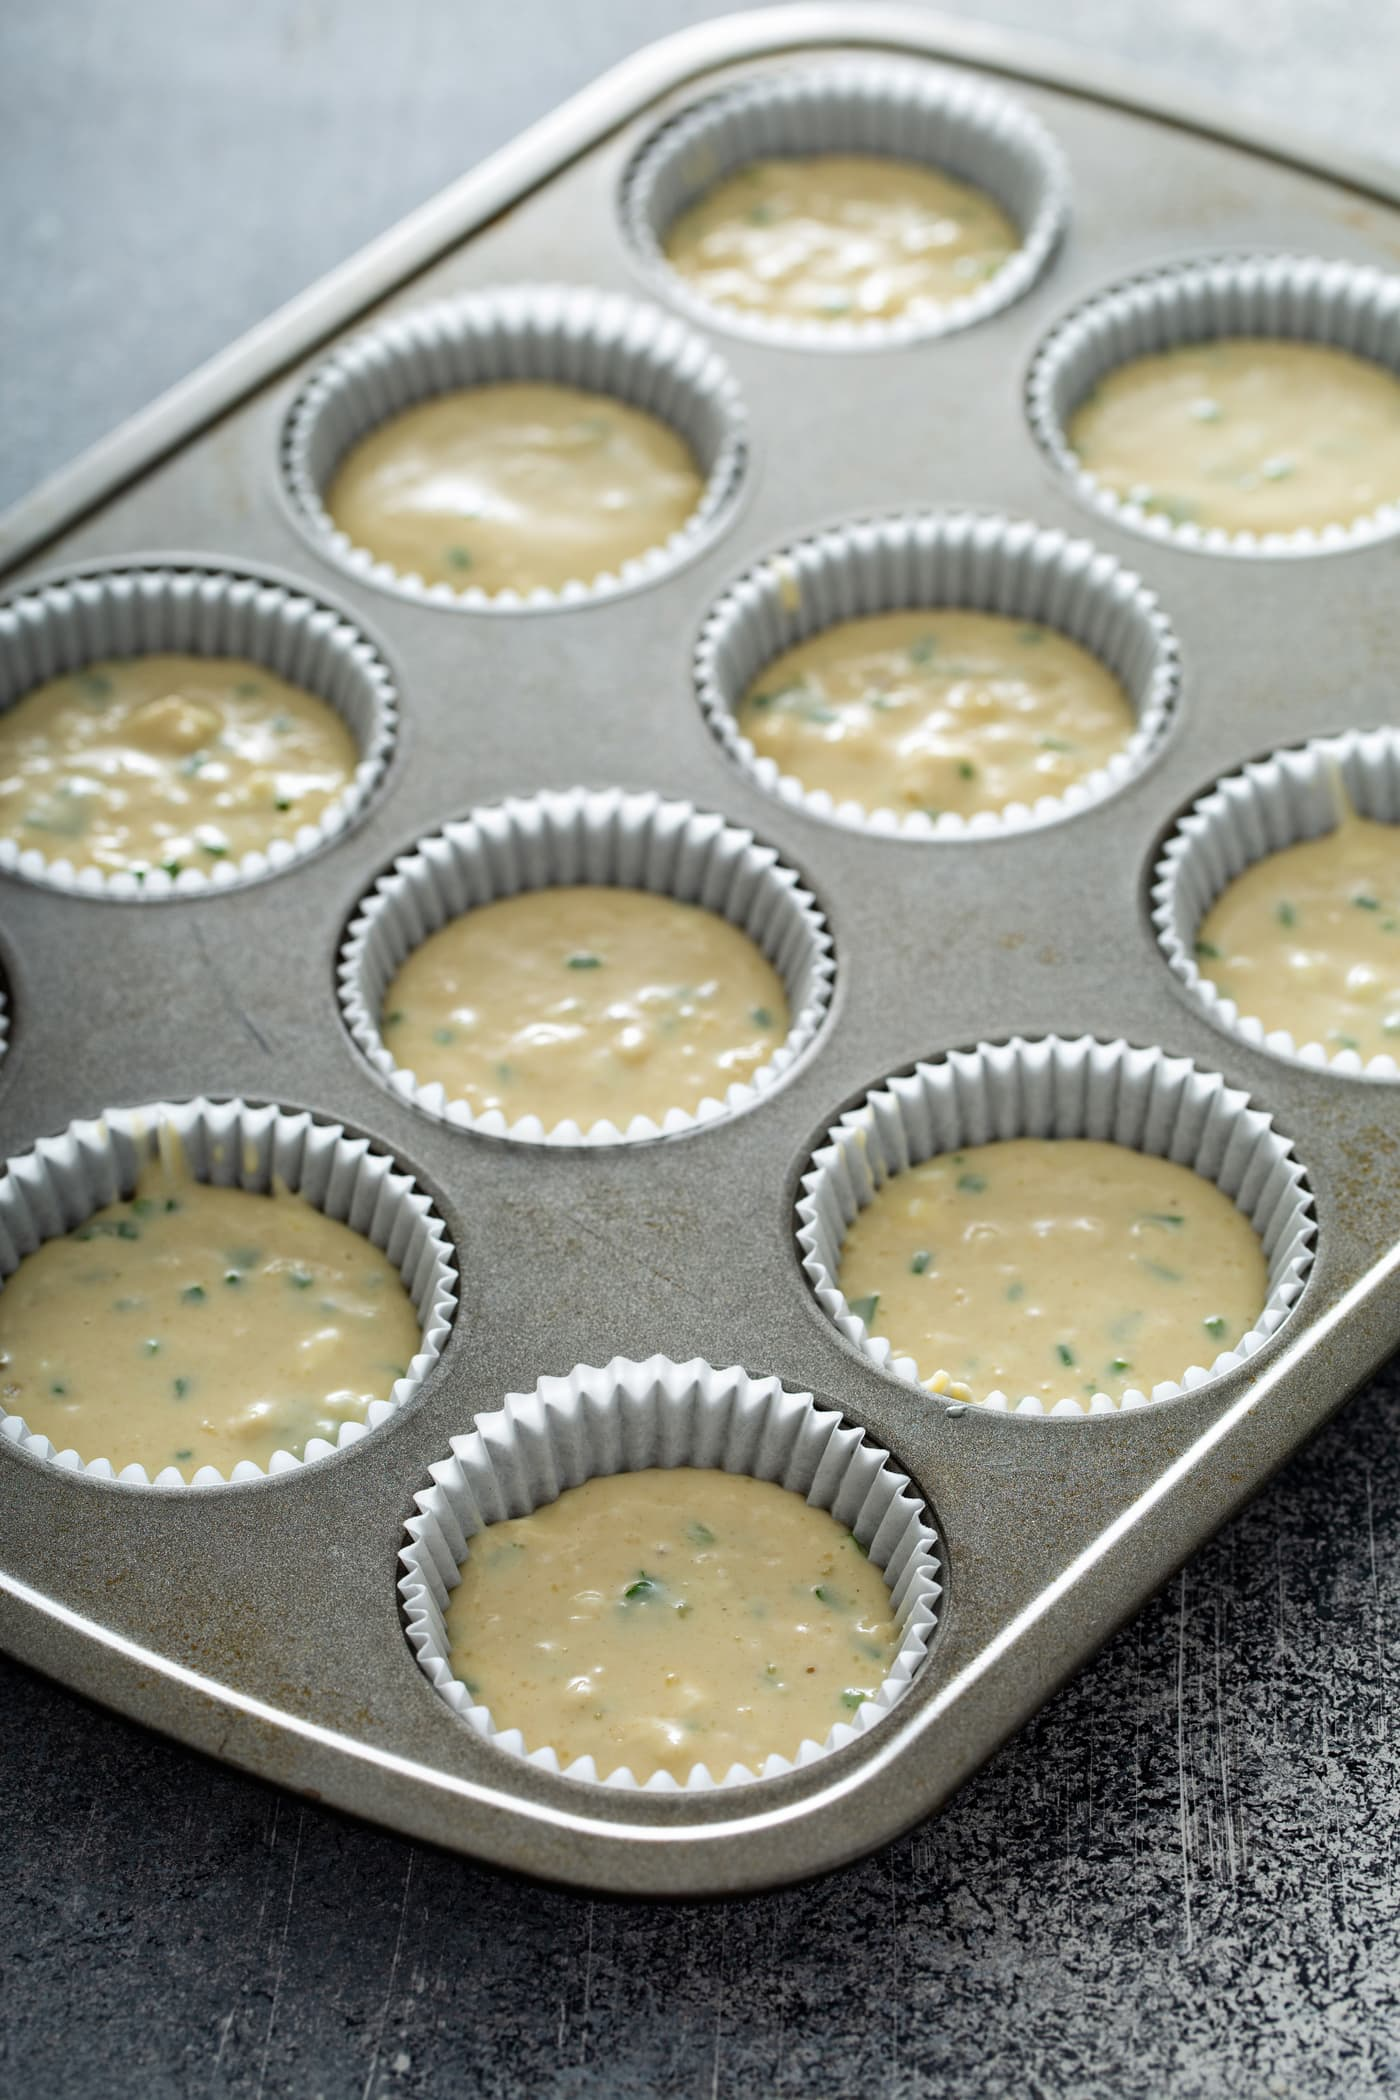 A muffin tin with muffin batter in white paper muffin liners.